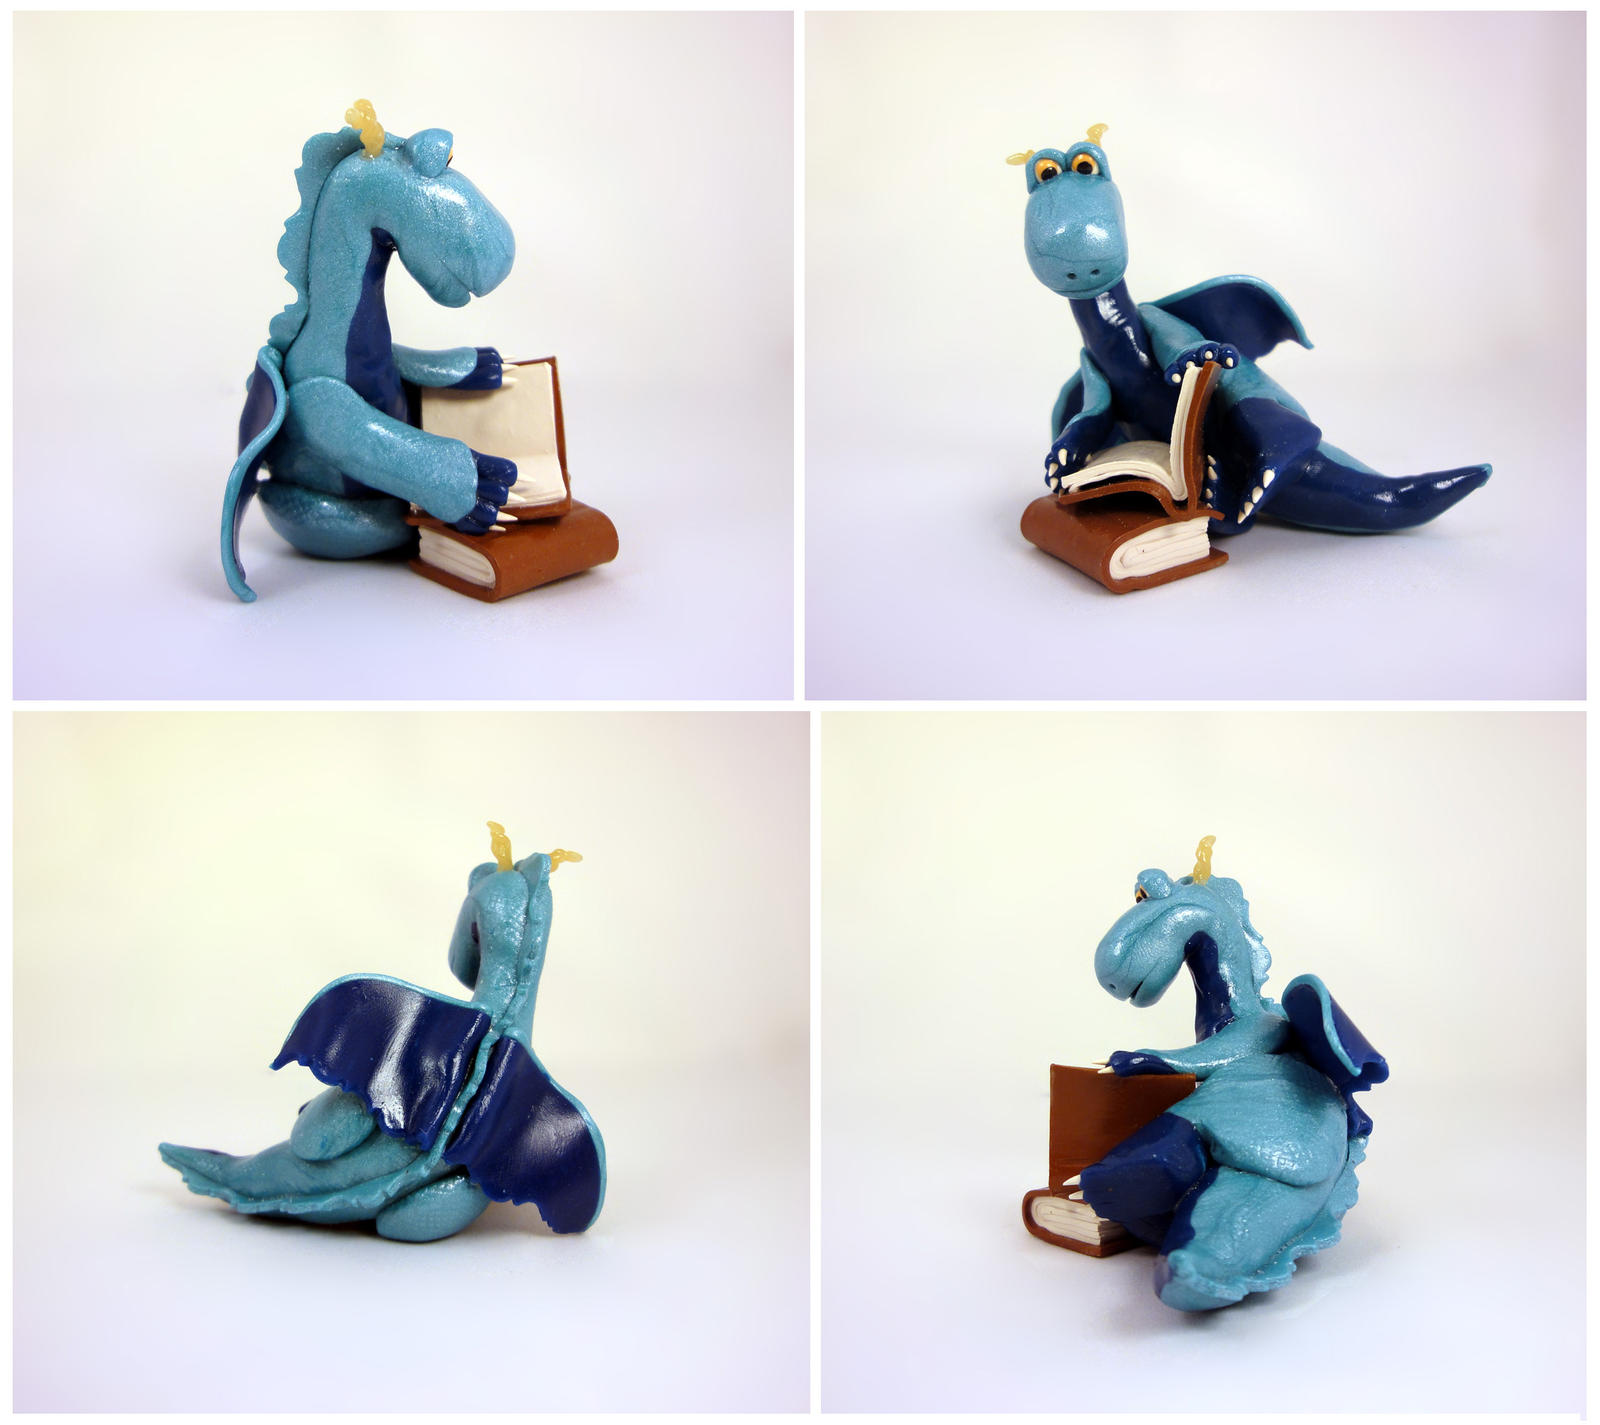 Blue dragon with a book